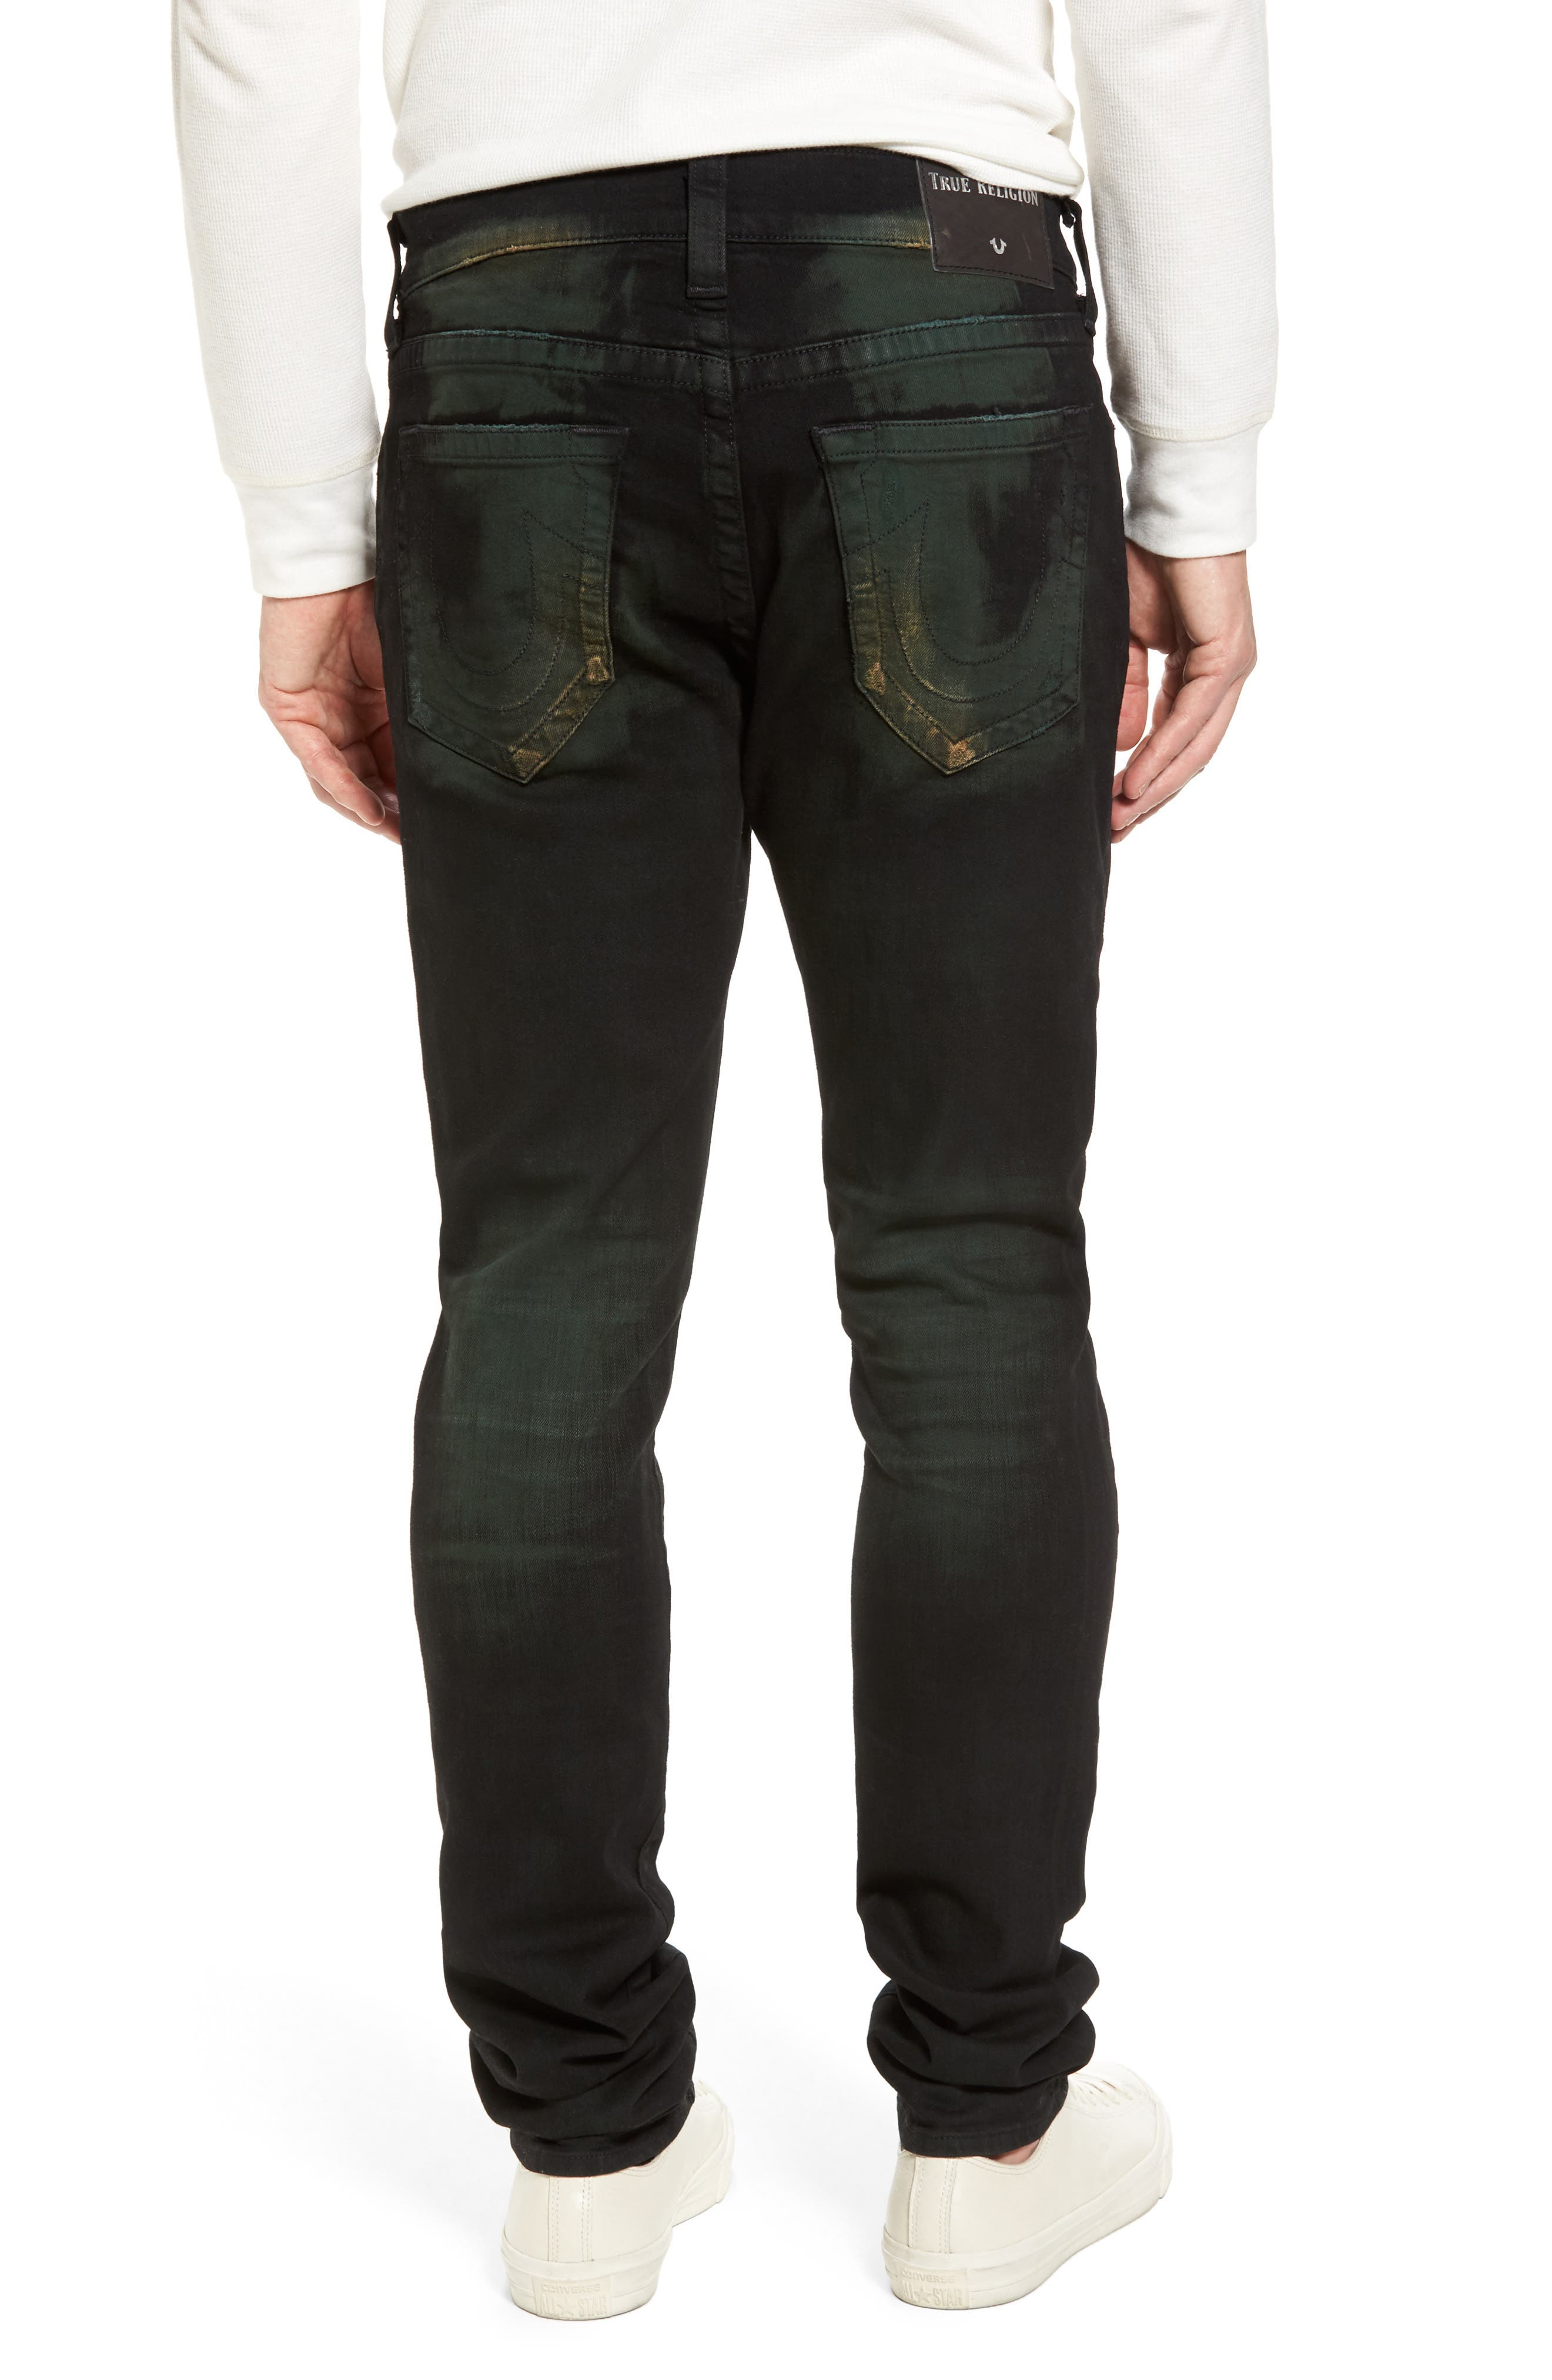 Rocco Skinny Fit Jeans,                             Alternate thumbnail 2, color,                             GREEN BLAZE